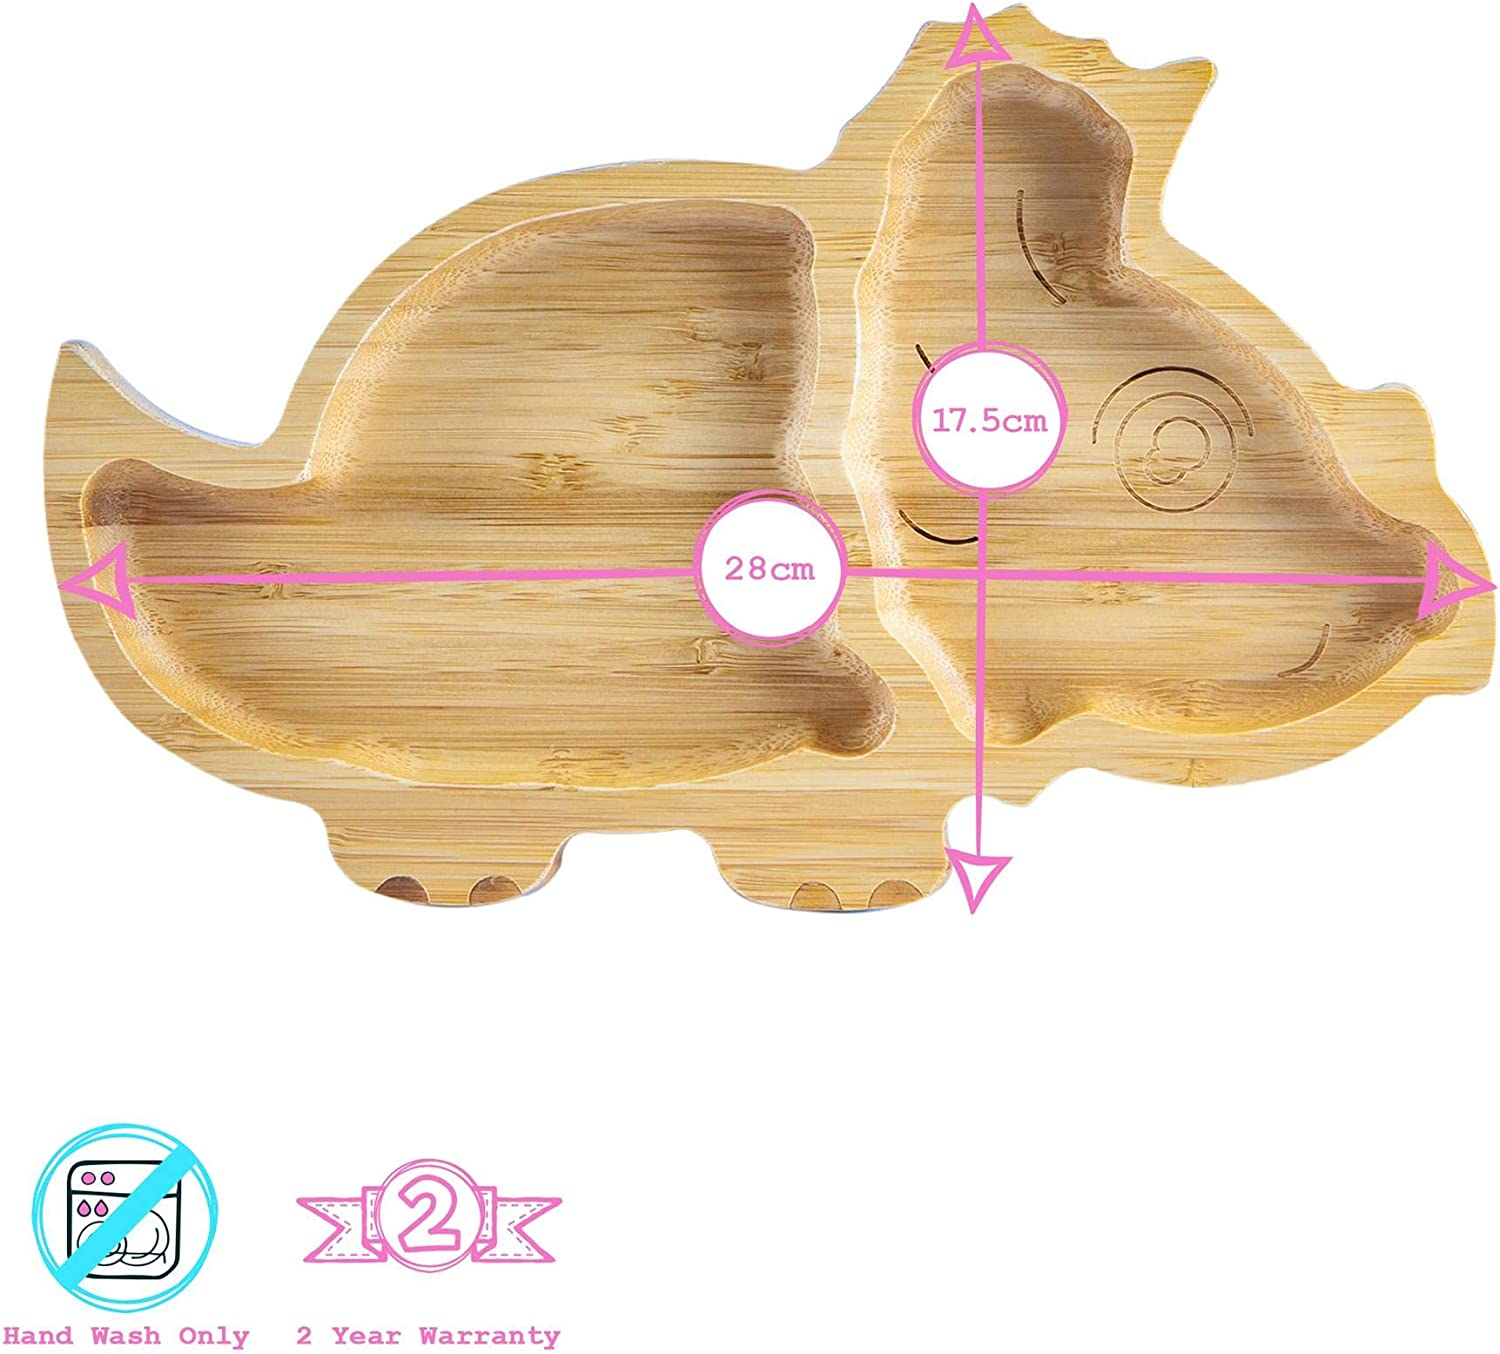 Tiny Dining Childrens Bamboo Dinosaur Plate with Suction Cup Segmented Design Eco-friendly Blue 28cm